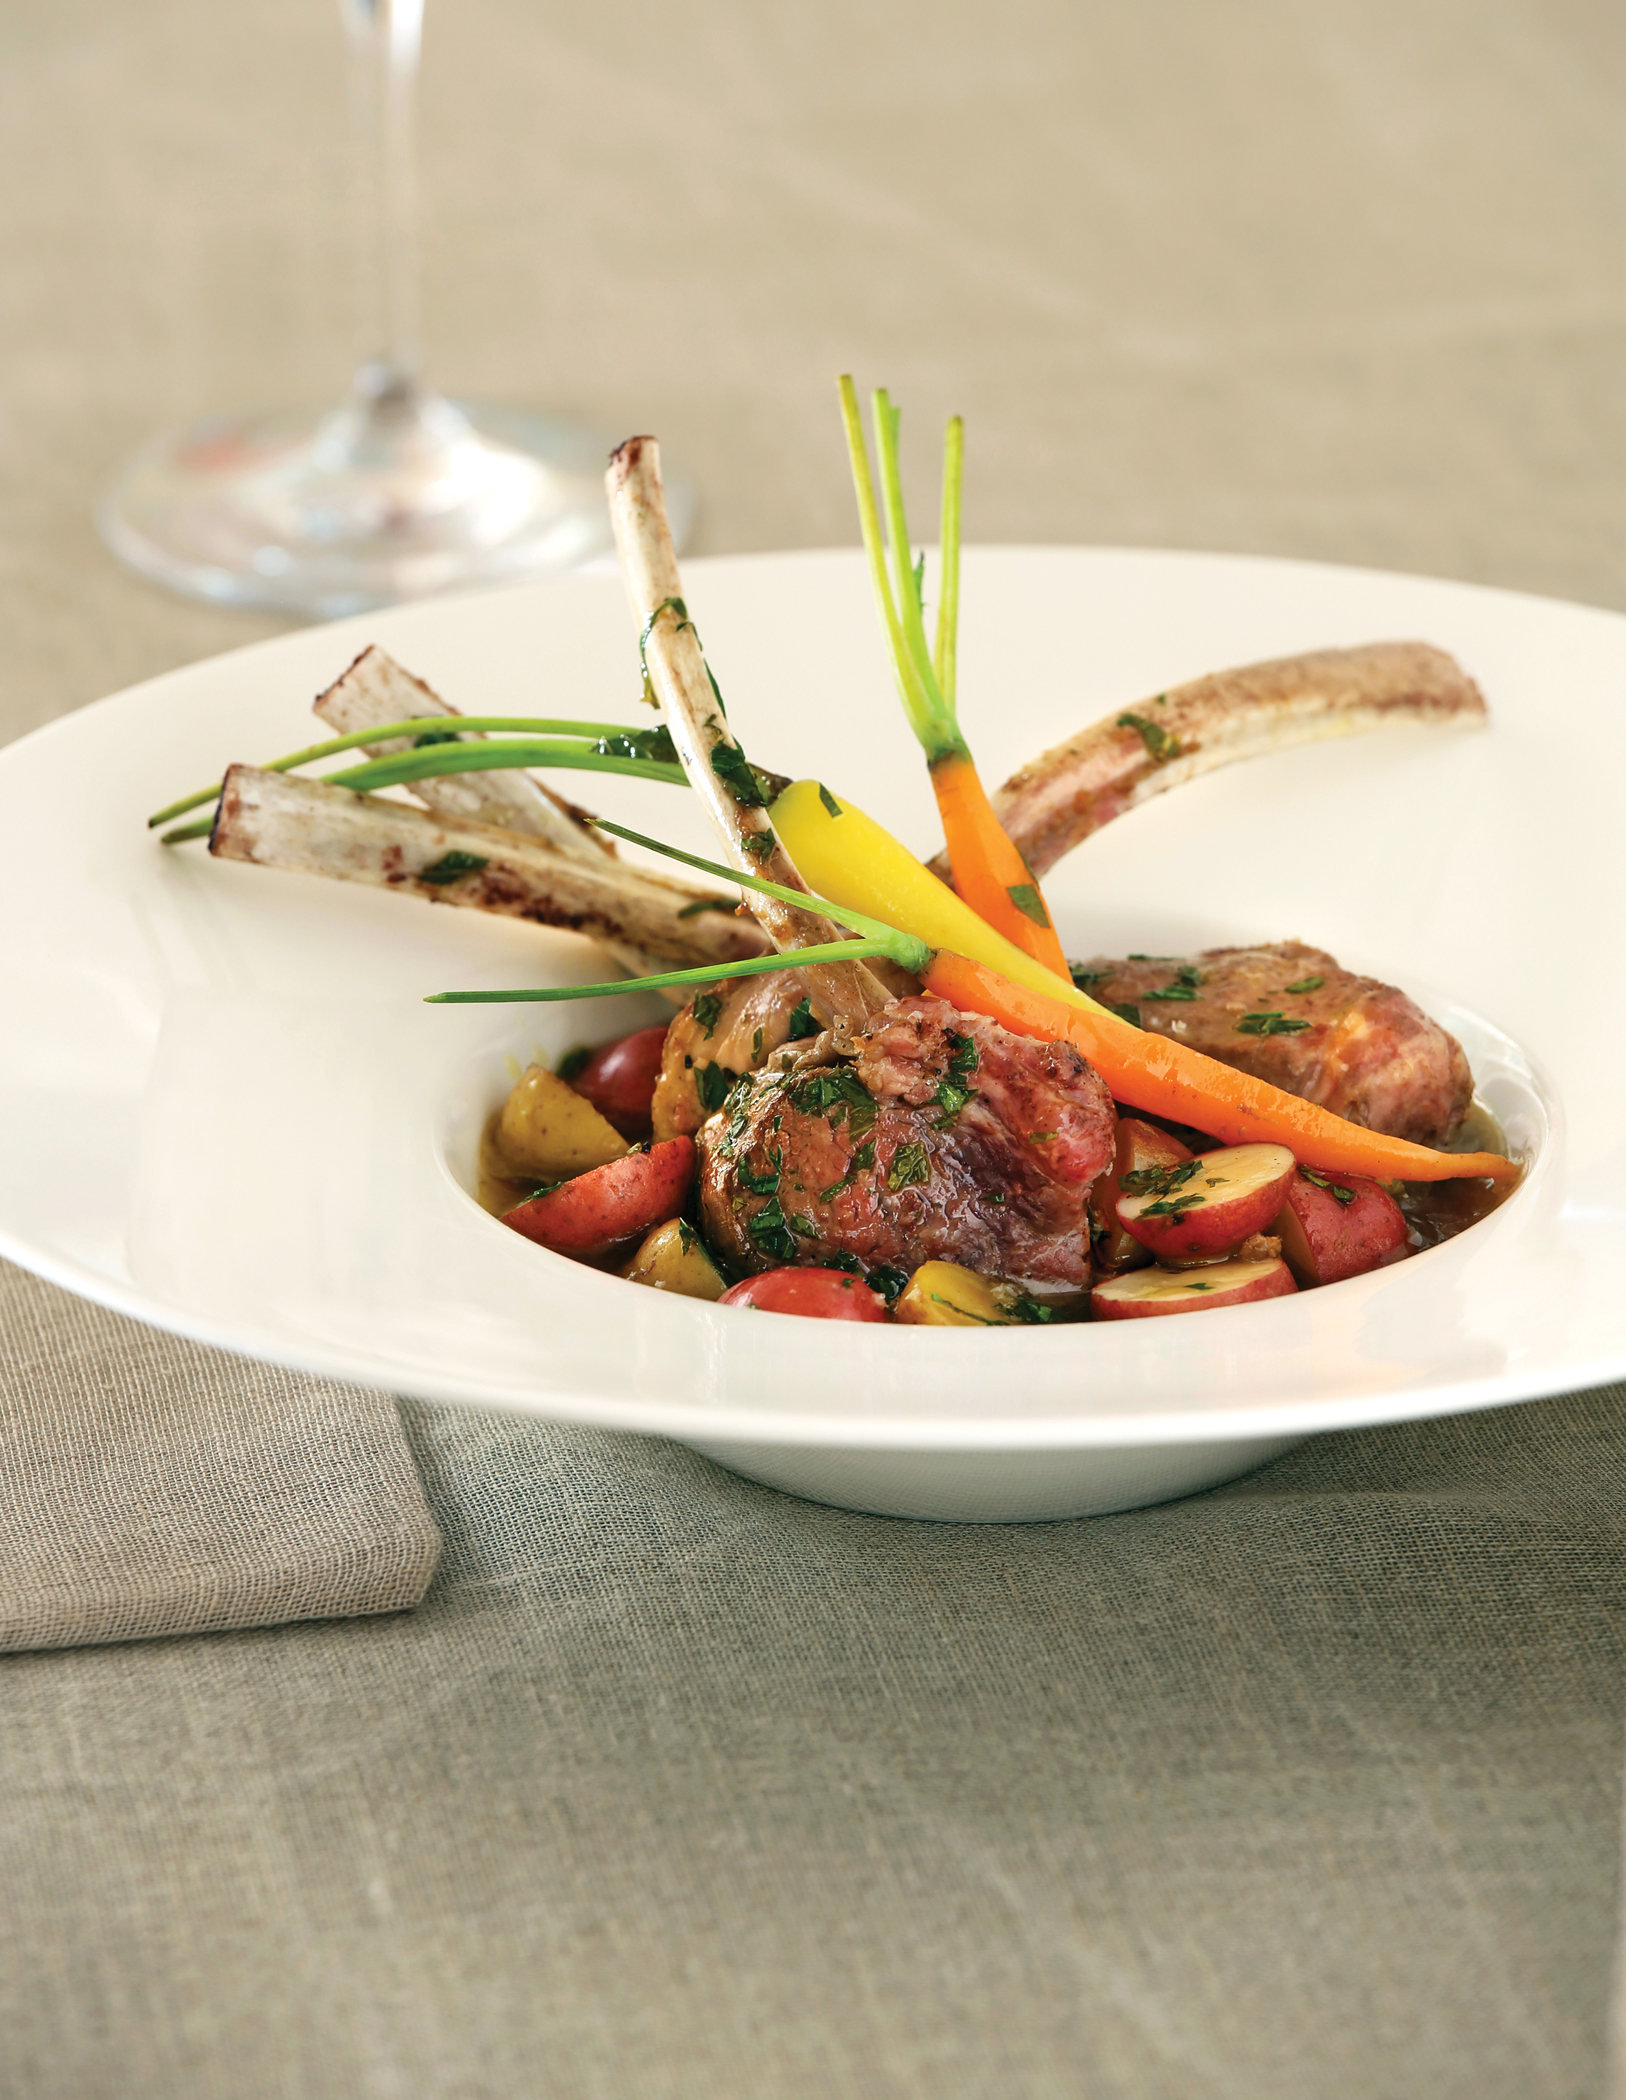 Grilled Lamb Chops from Monet's Palate Cookbook